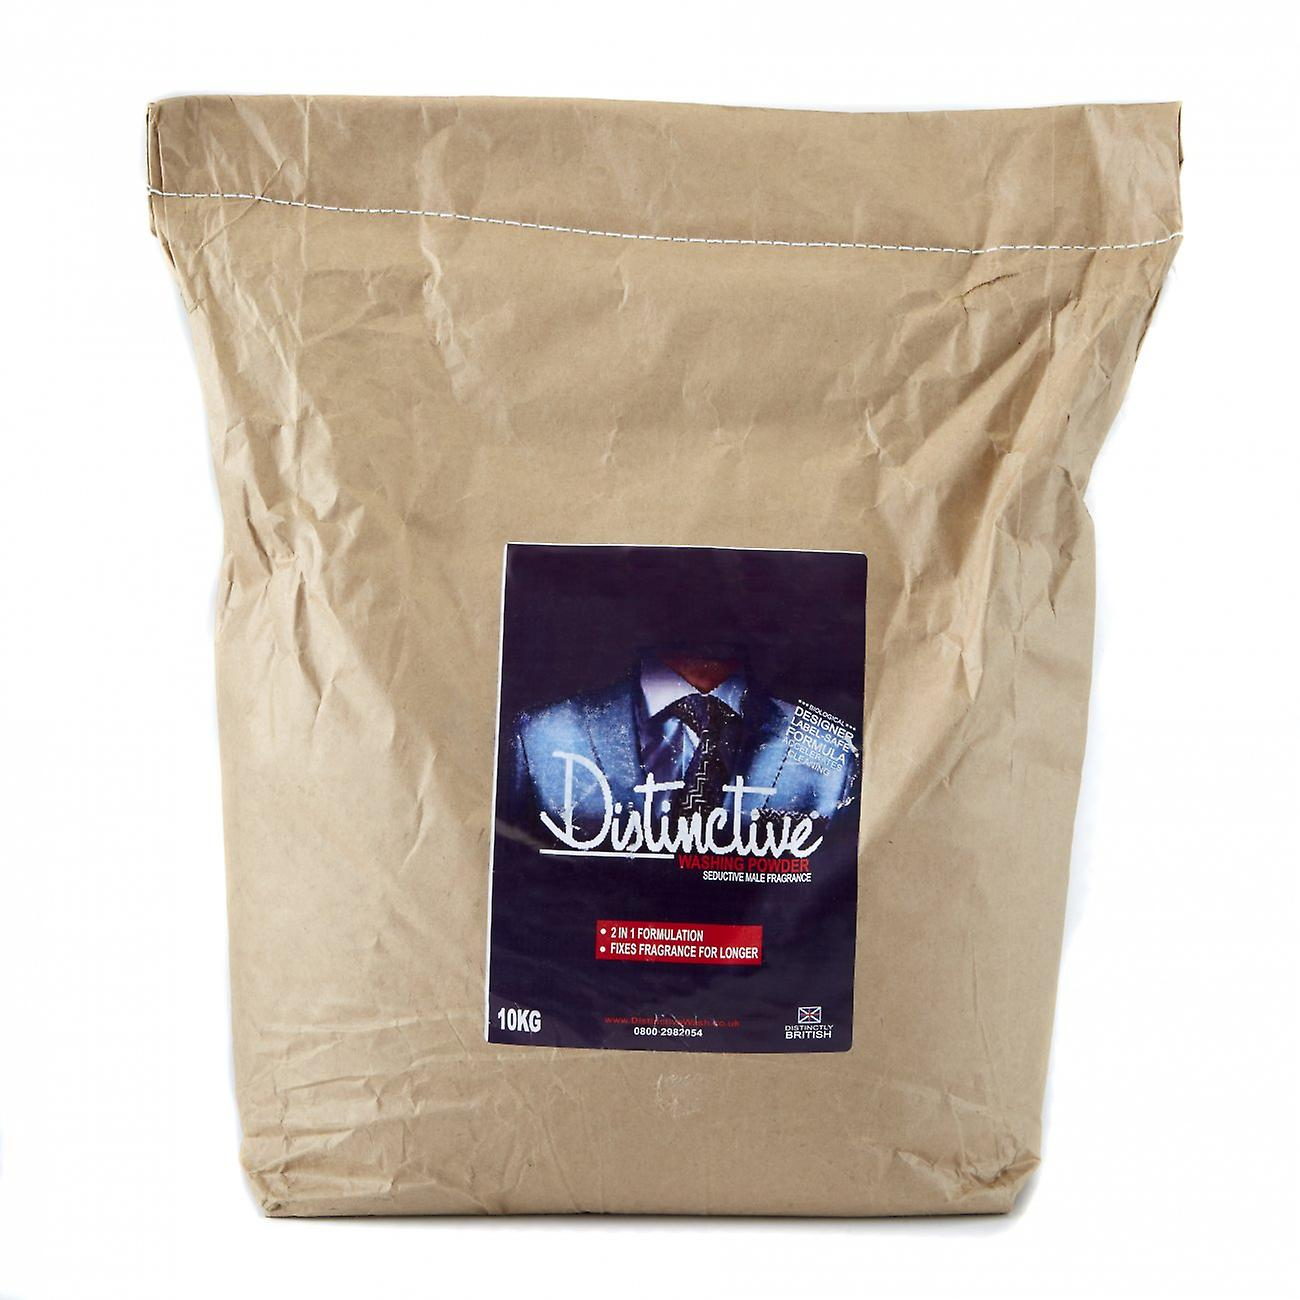 Distinctive Washing Powder, 166 Wash Sack - Masculine Fragrance